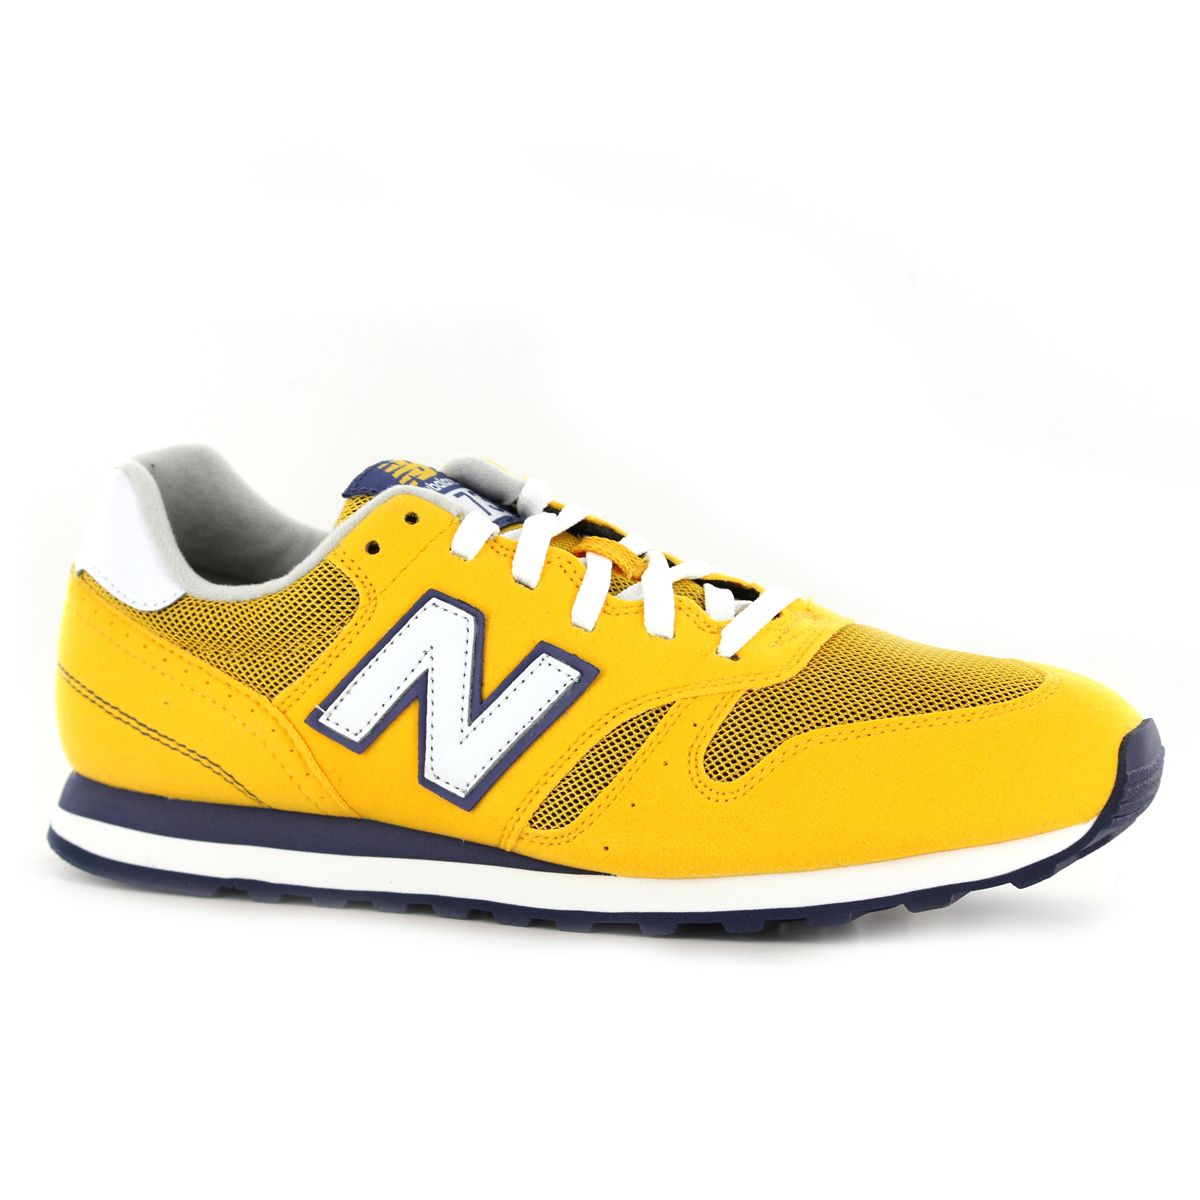 new balance 373 navy yellow